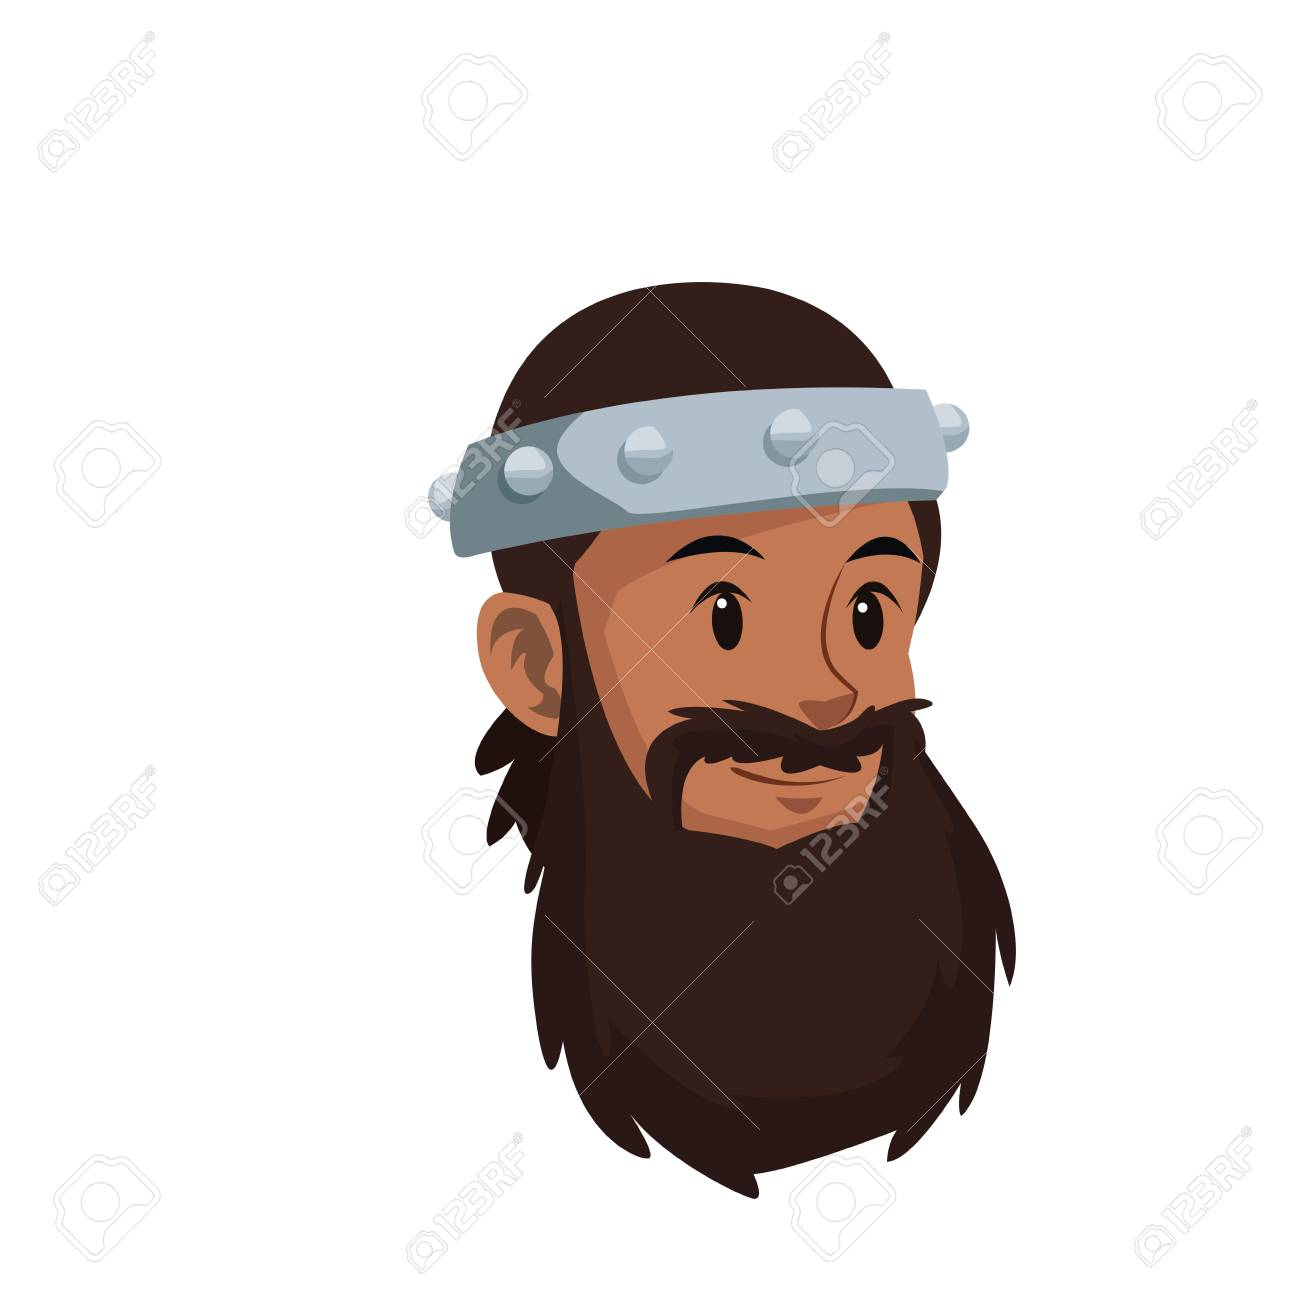 halloween costume viking man beard helmet vector illustration Stock Vector - 80044779  sc 1 st  123RF.com & Halloween Costume Viking Man Beard Helmet Vector Illustration ...